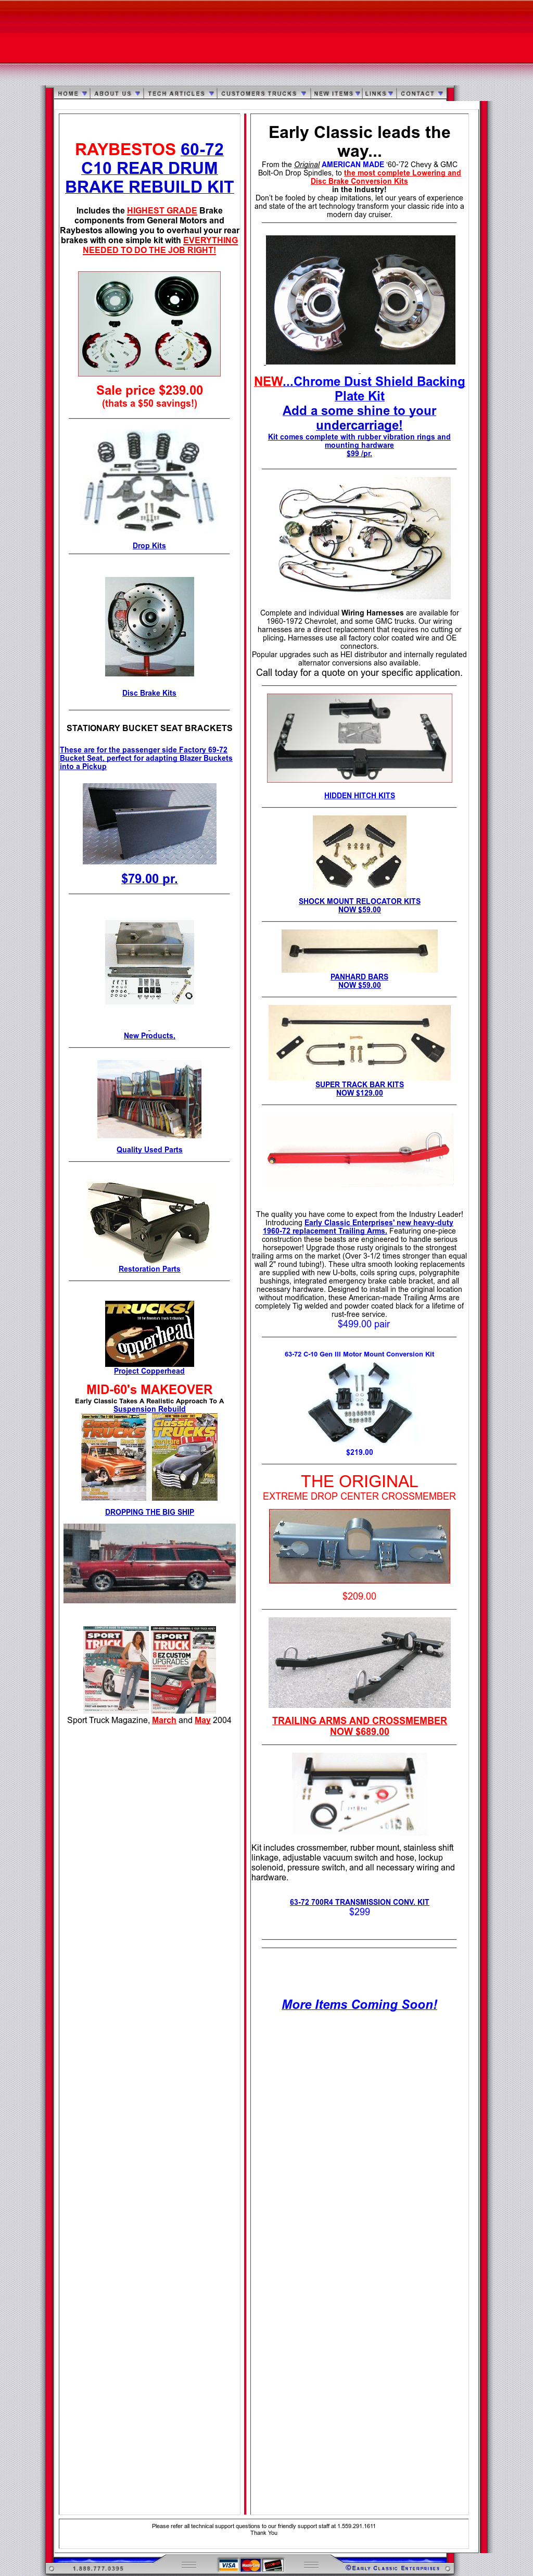 Early Classic Enterprises Competitors Revenue And Employees Owler 1960 Chevy Truck Wiring Harness Company Profile